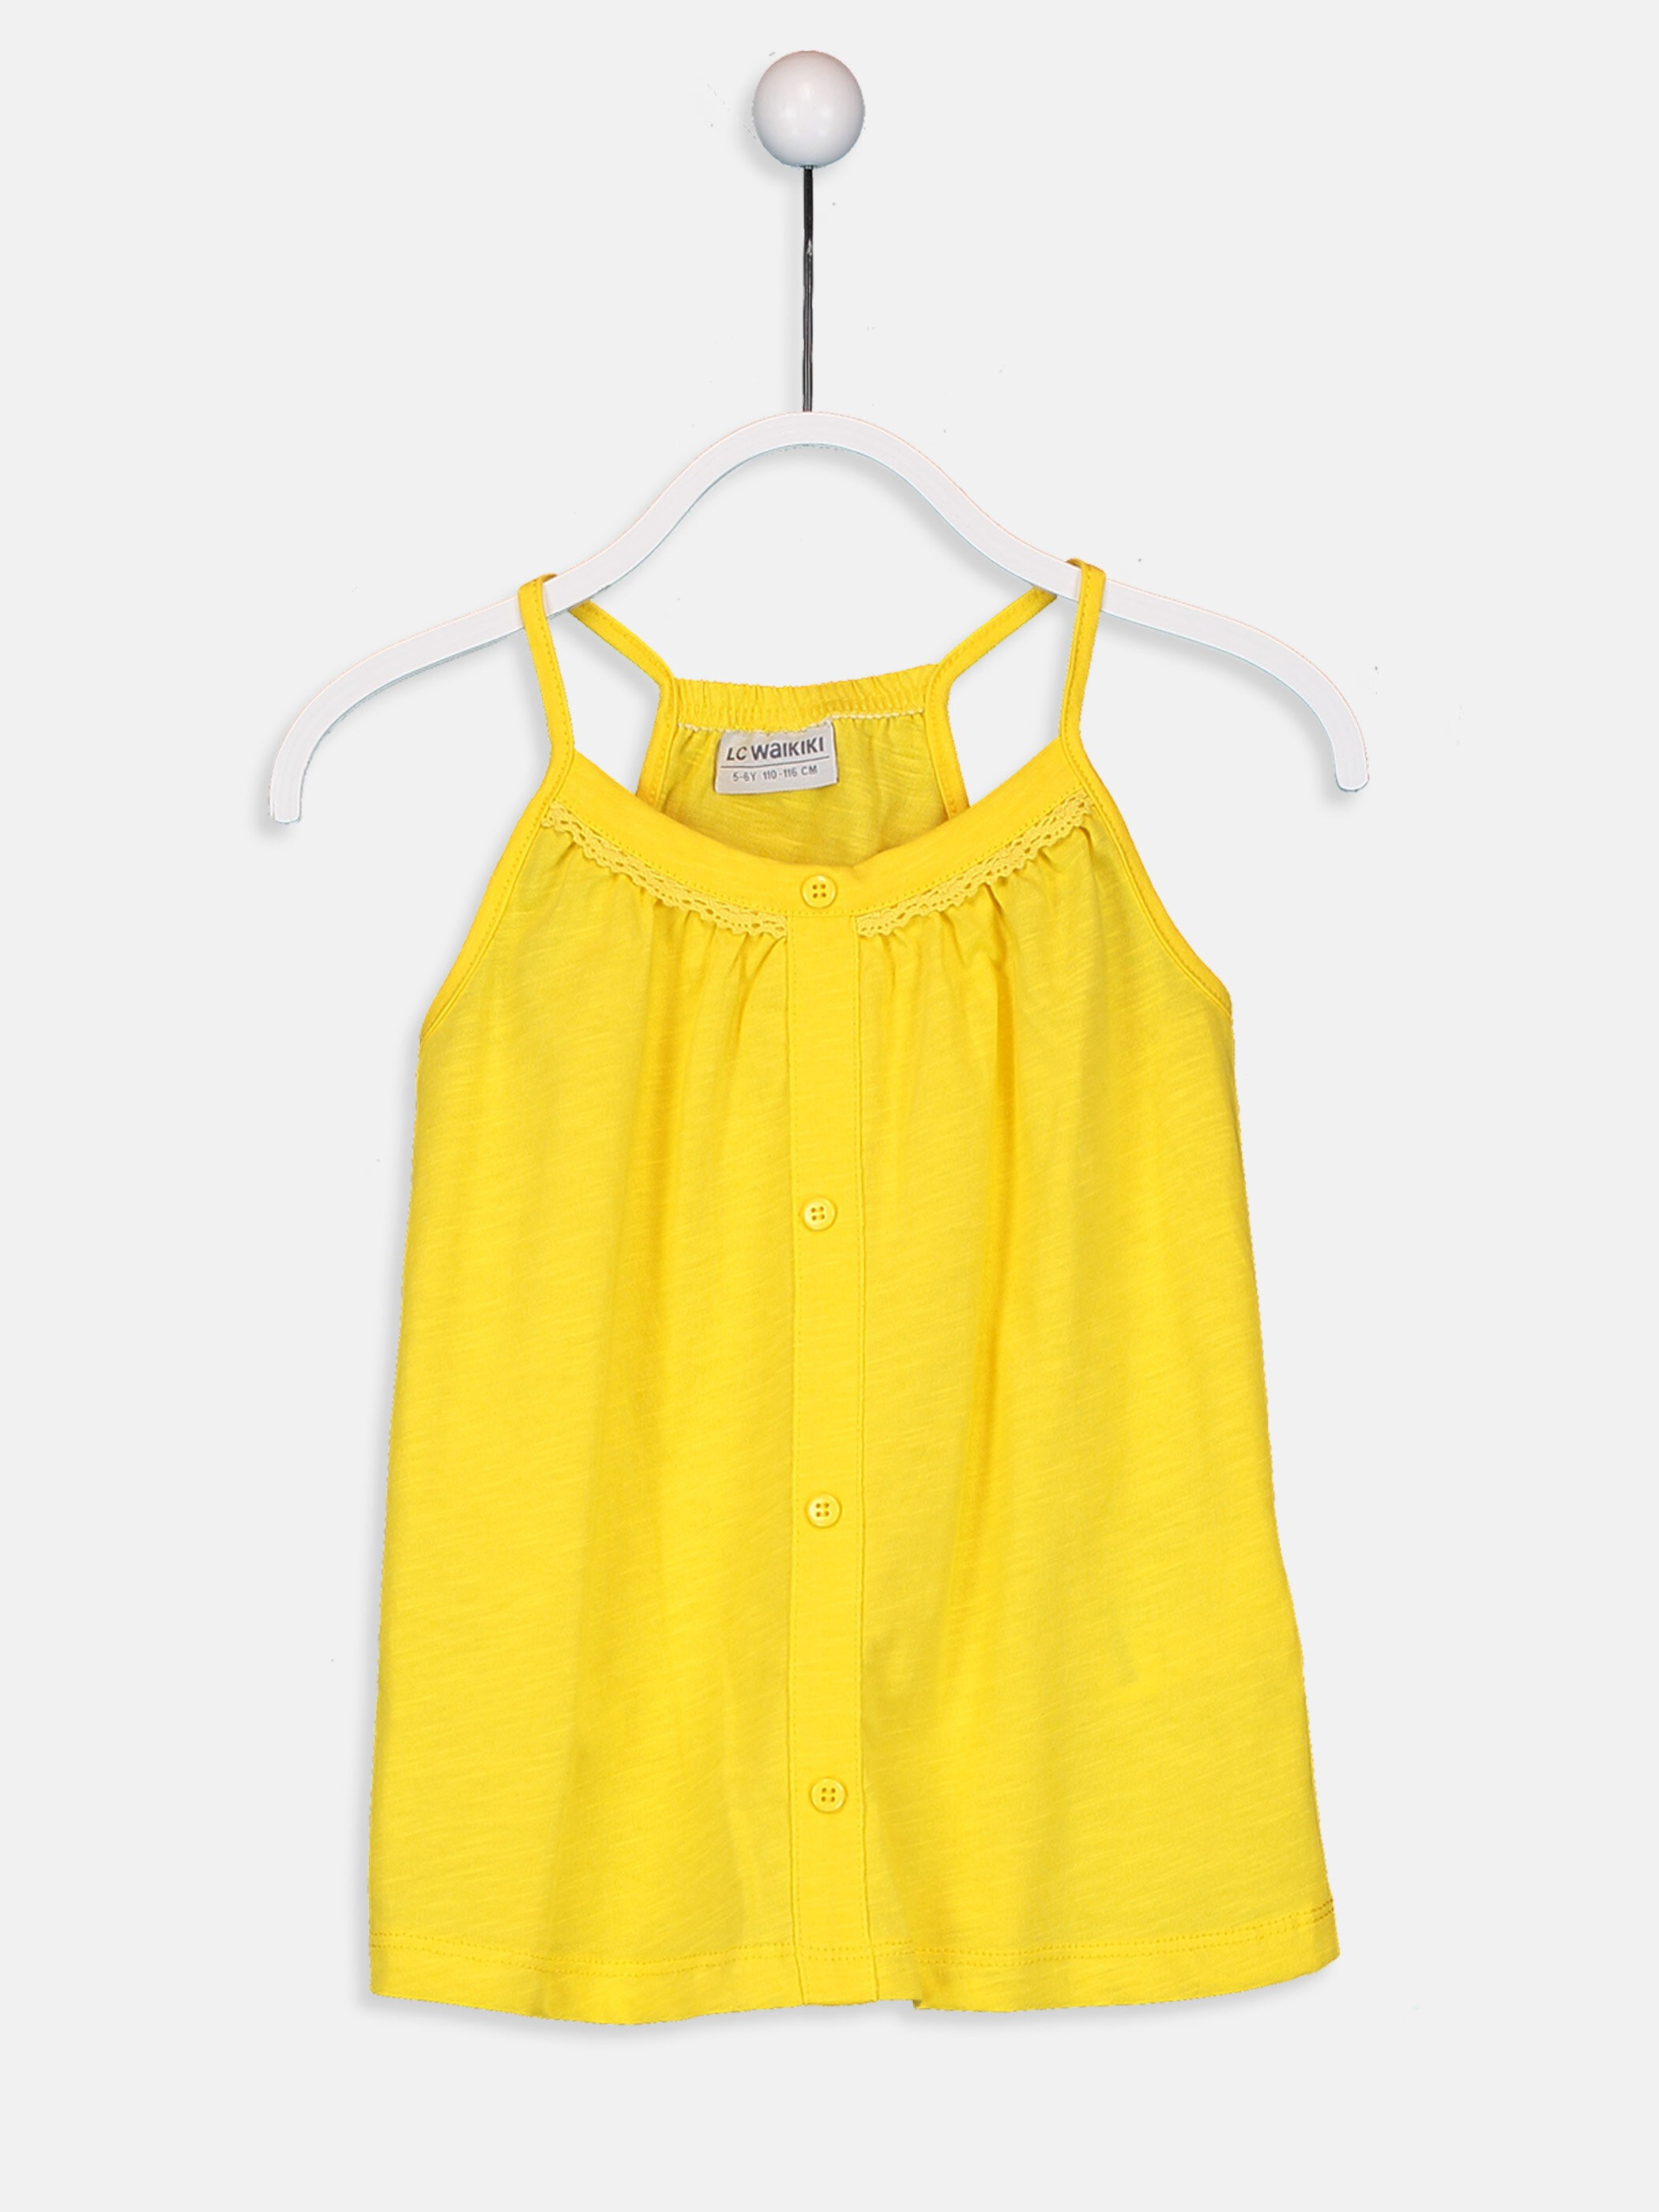 YELLOW - Girl's Cotton Tank Top with Button Detail - 9SA410Z4